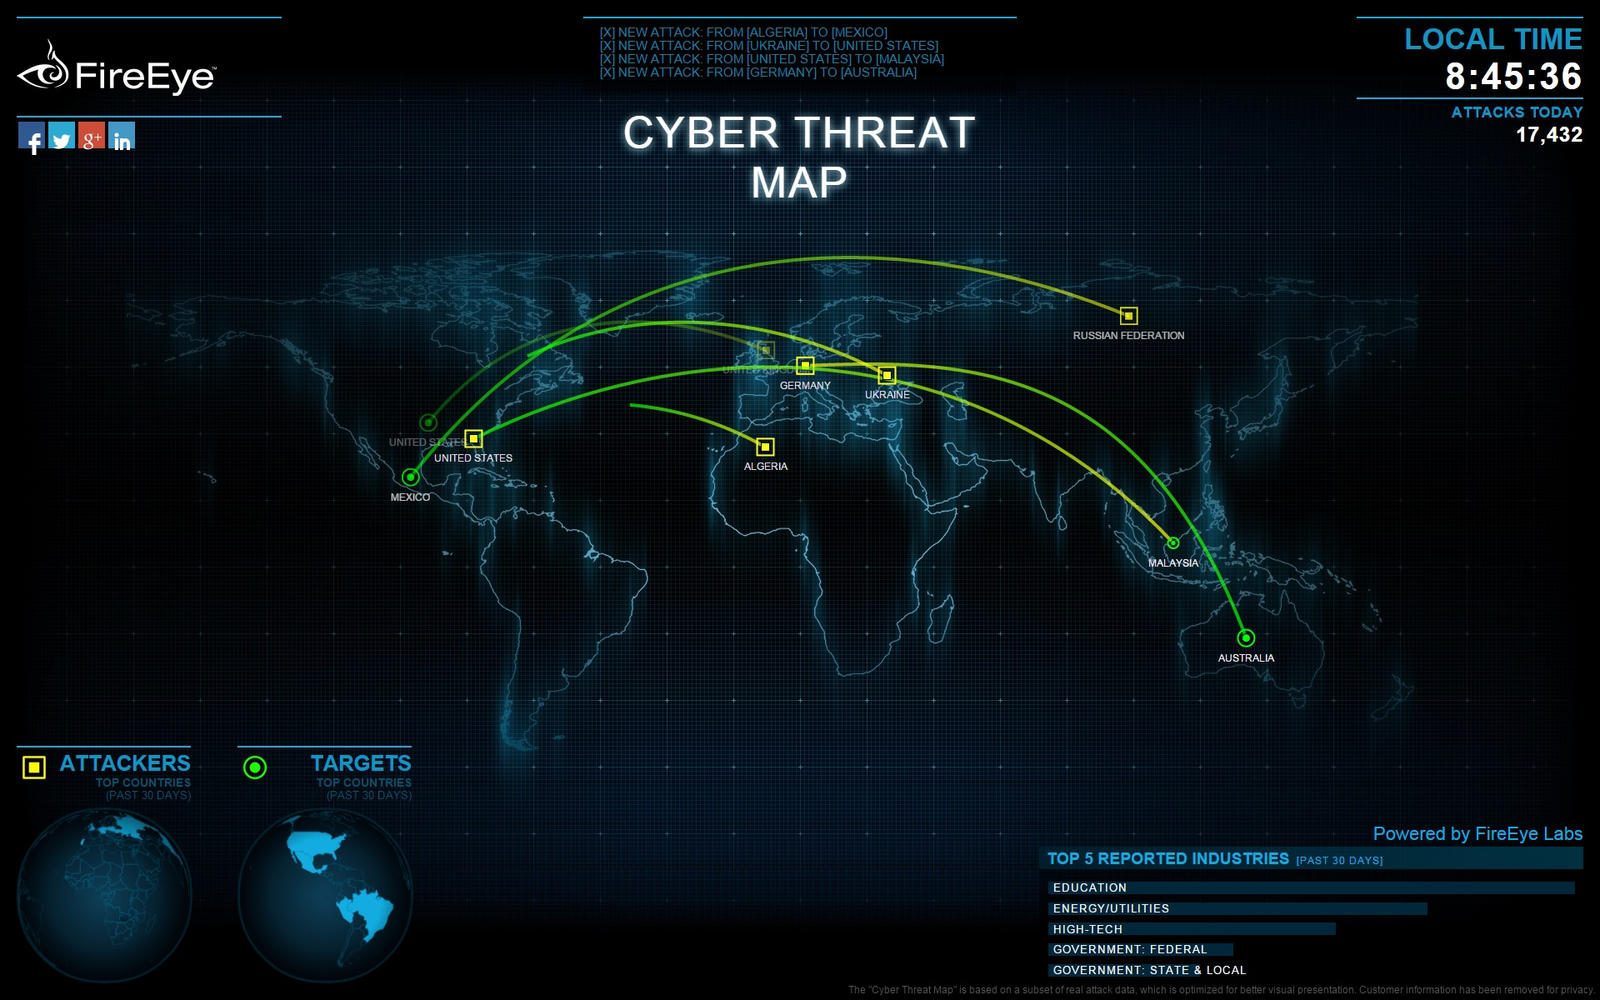 Cyber Security Memo Real Time Cyber Attack Threat Map